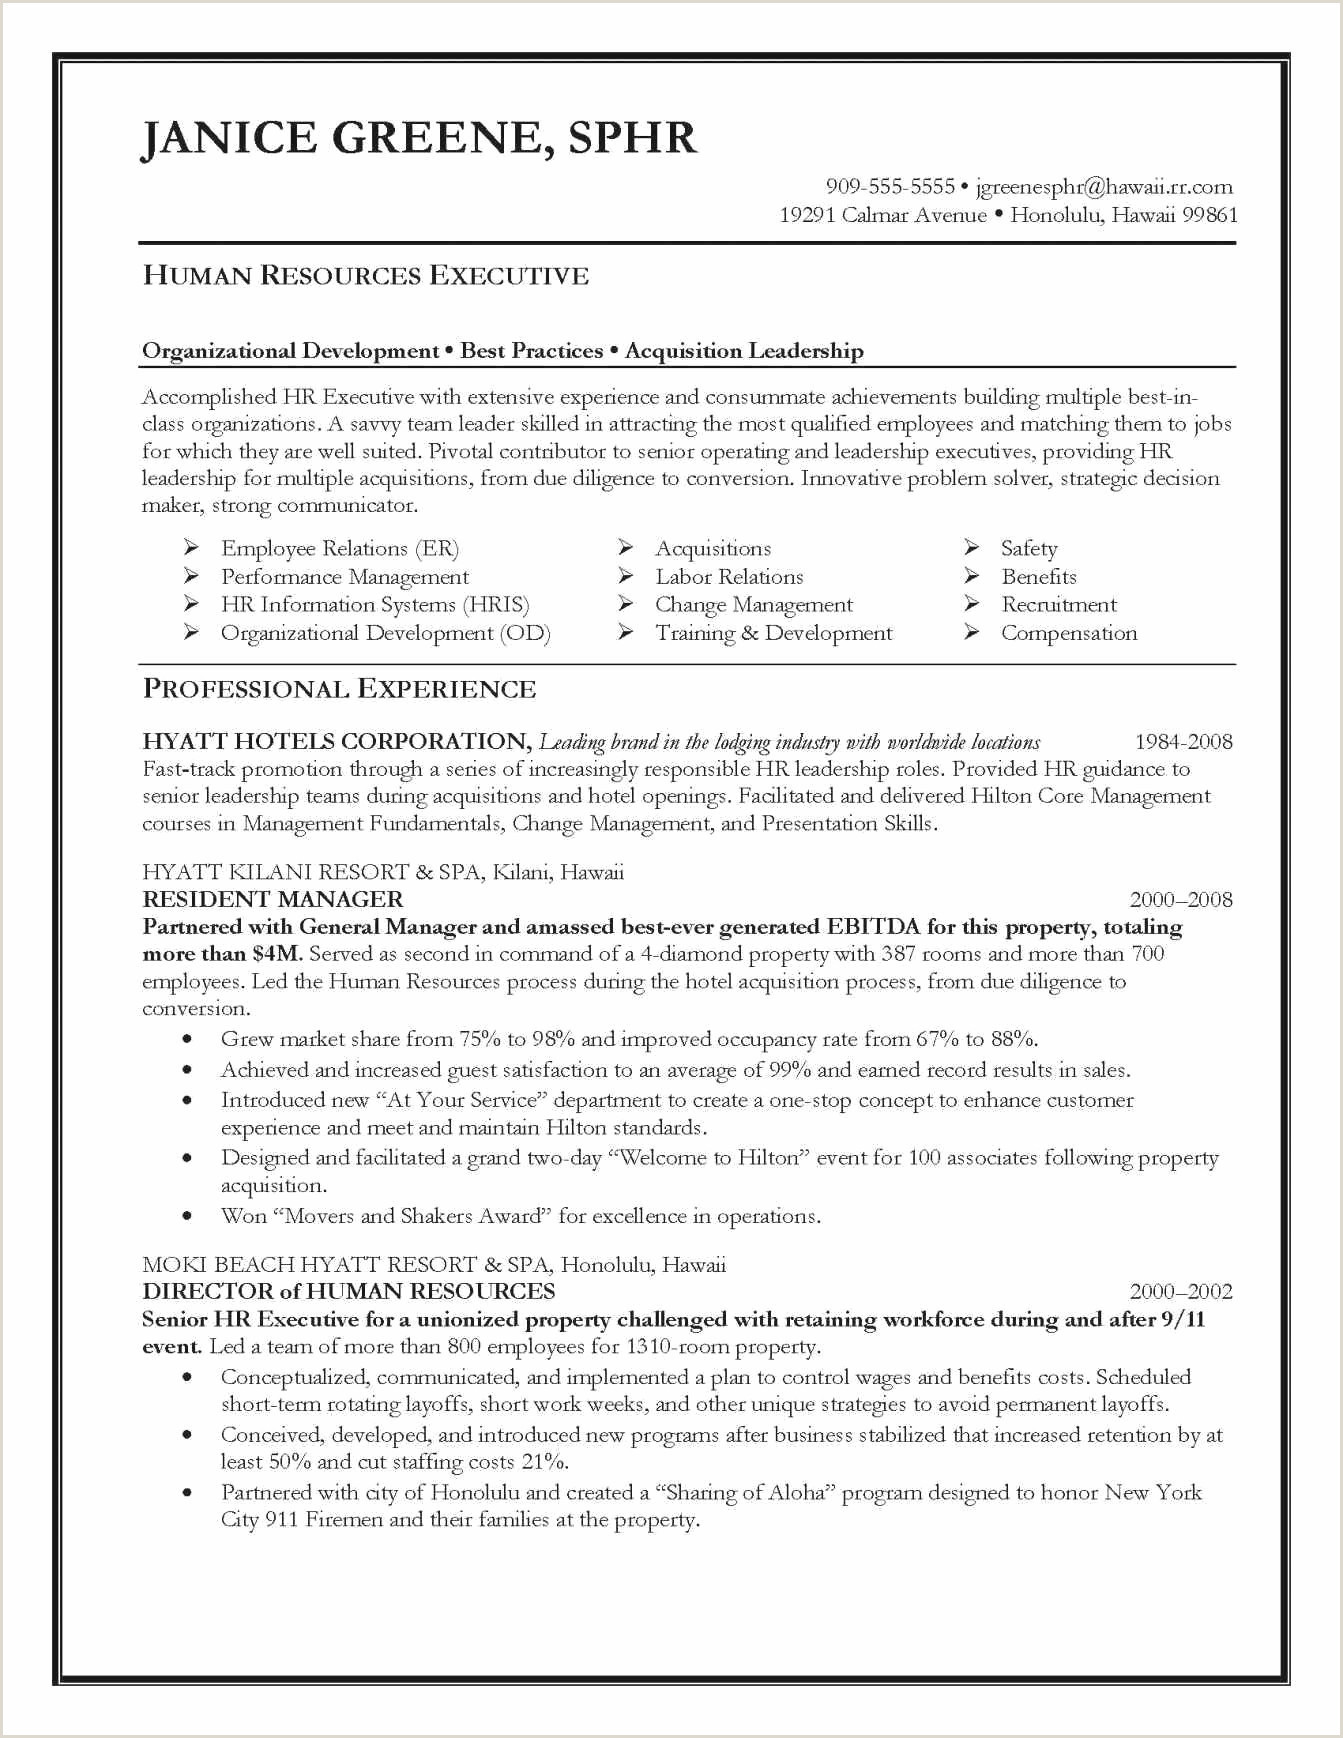 Sample General Laborer Resume Qualified General Laborer Resume General Labor Resume